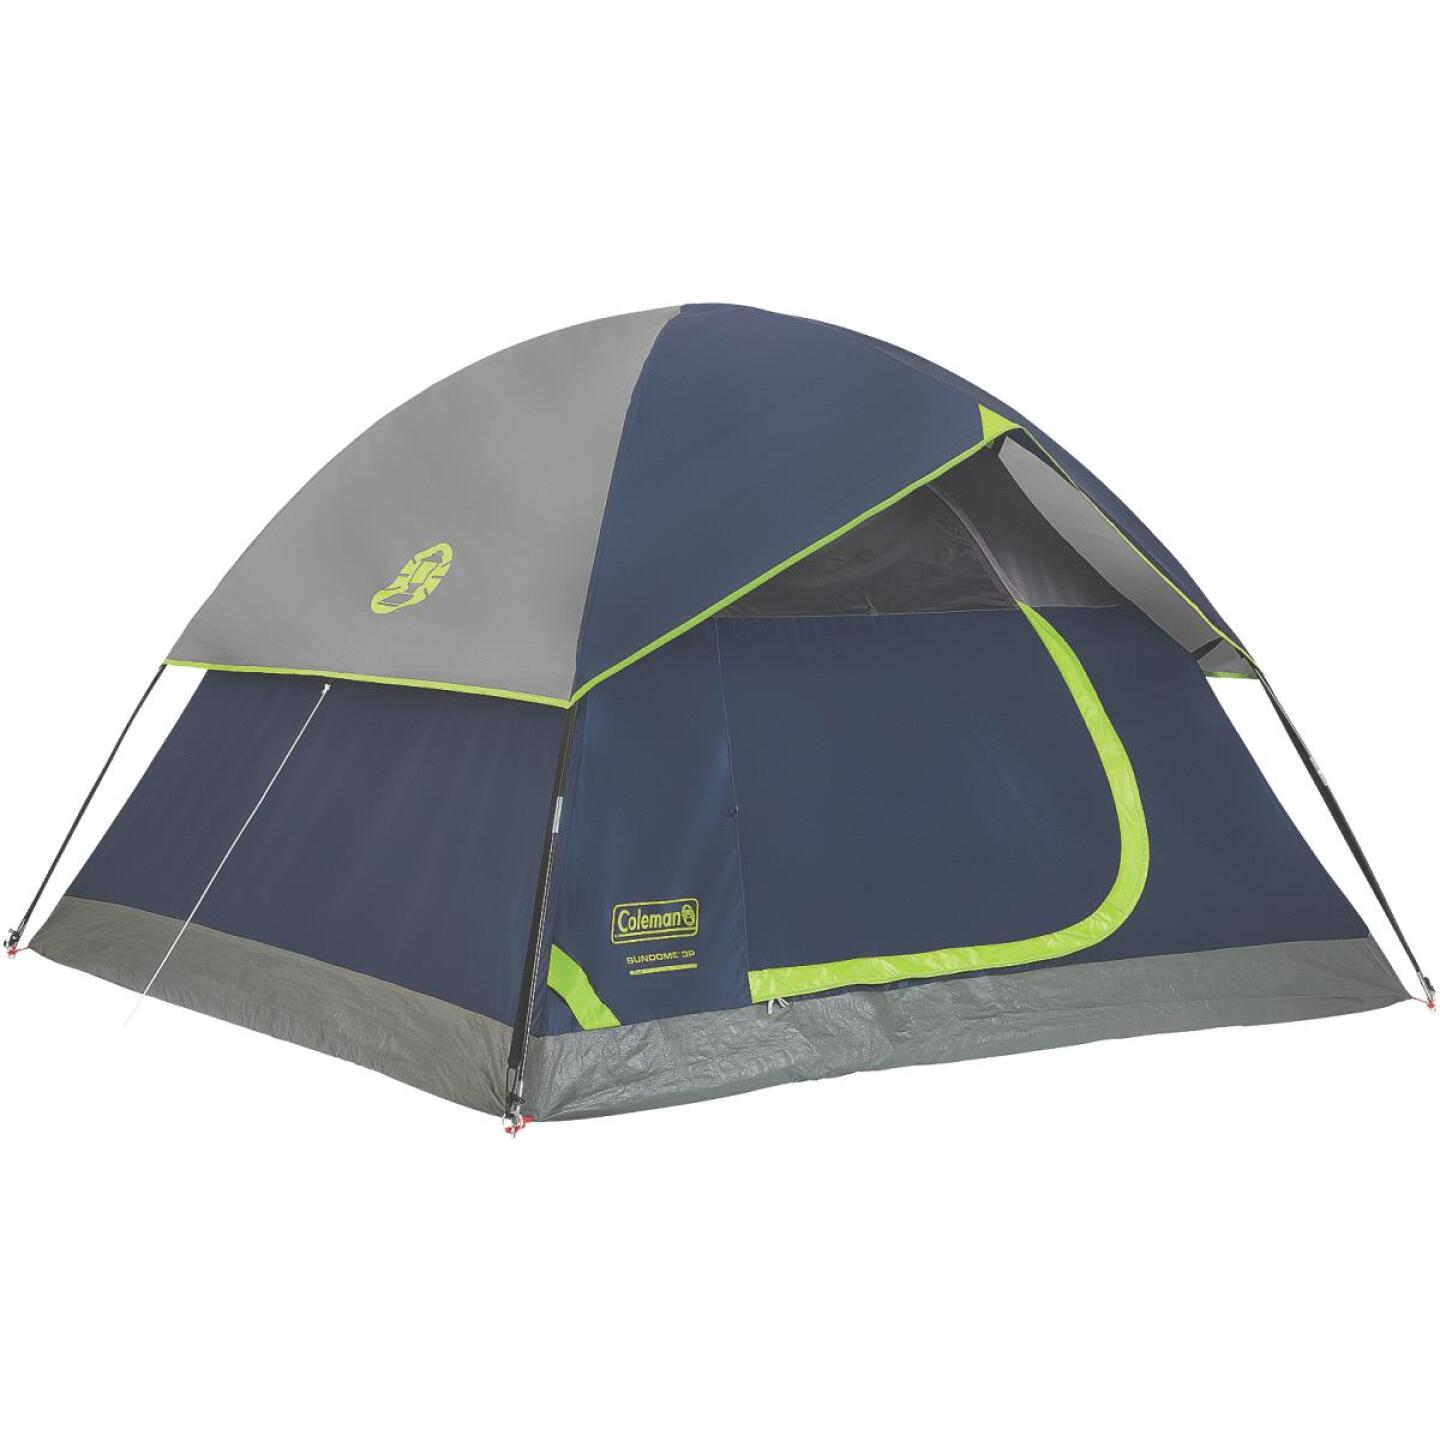 Coleman 3-Person 7 Ft. W. x 7 Ft. L. Dome Tent Image 1